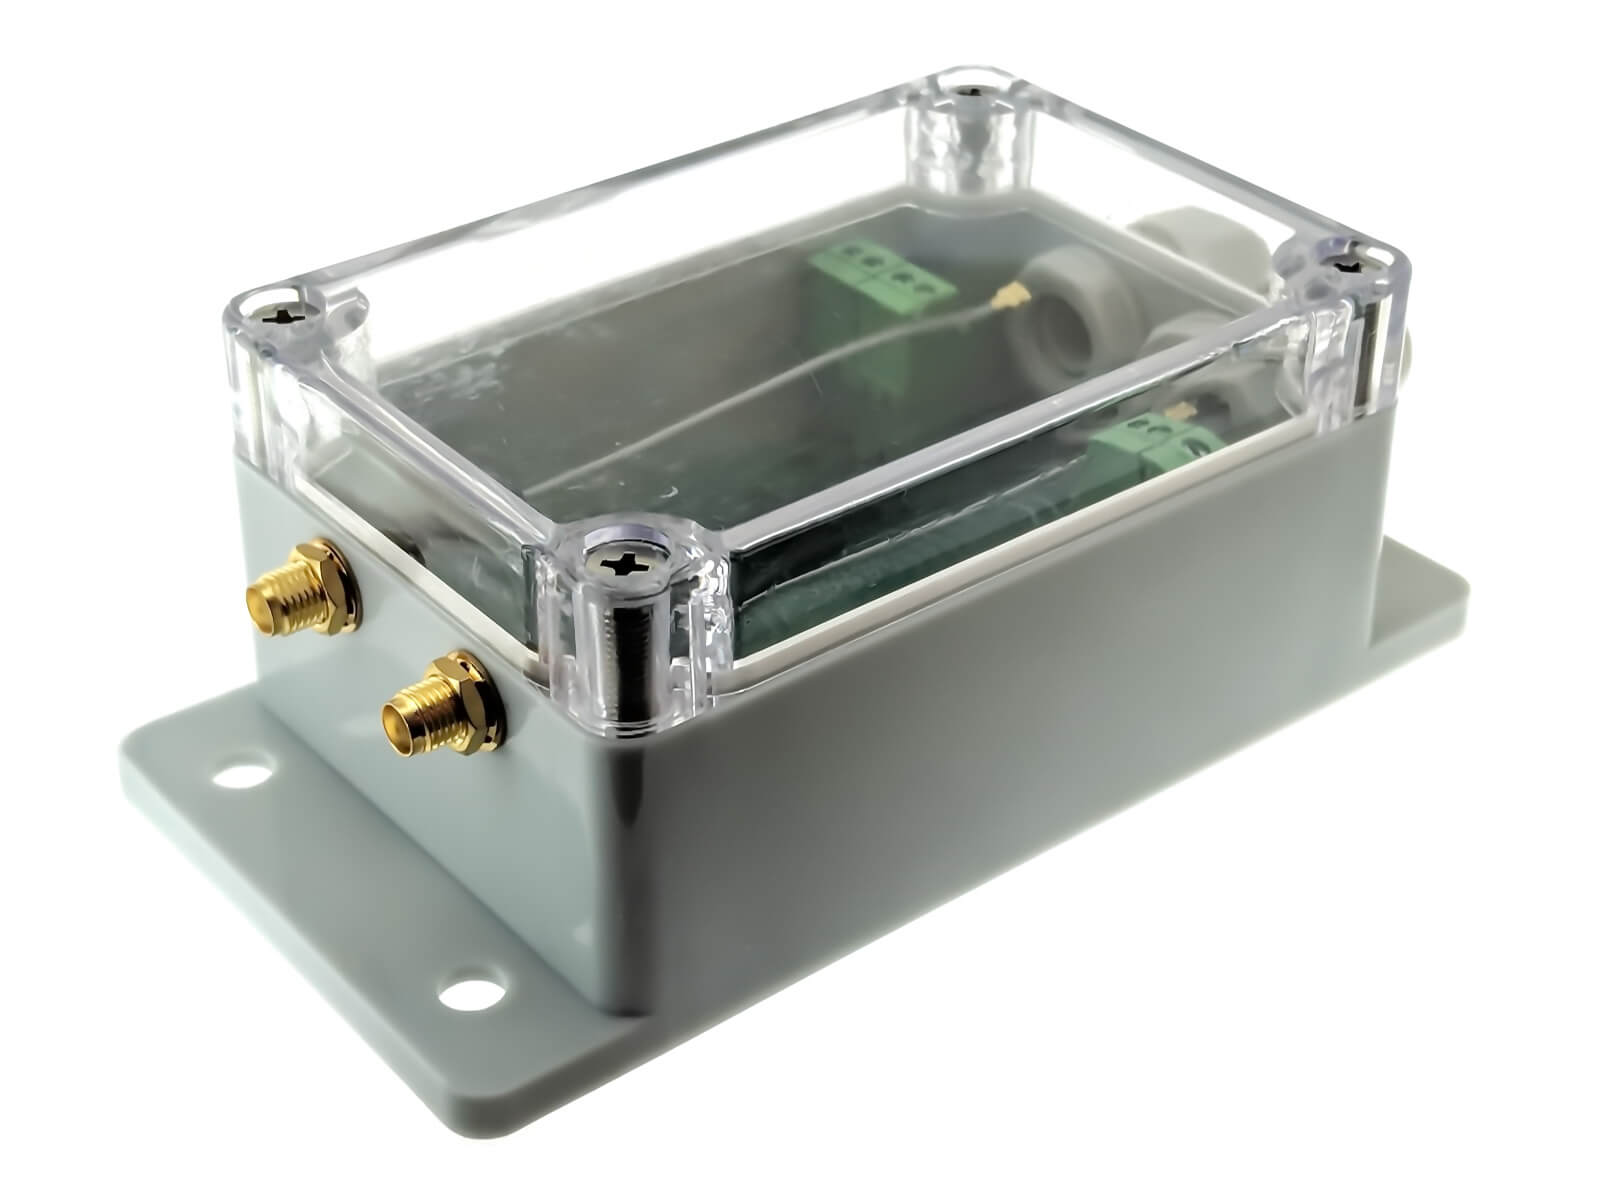 qBox-AFC-DIY-IOT-Enclosure-Kit